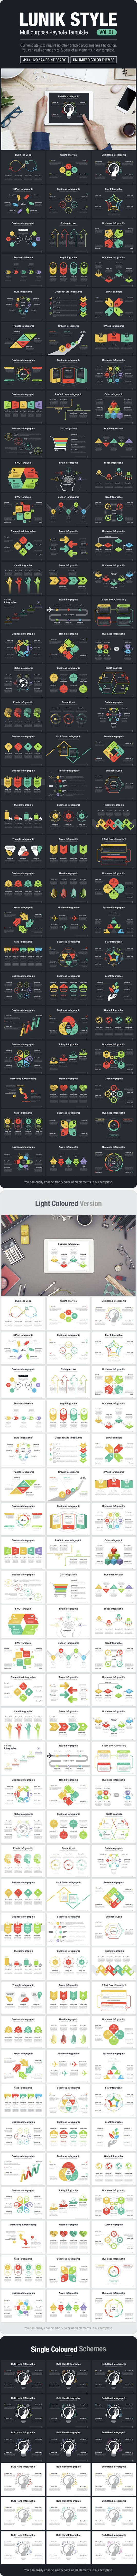 13 best 流程 images on Pinterest | Info graphics, Infographic ...